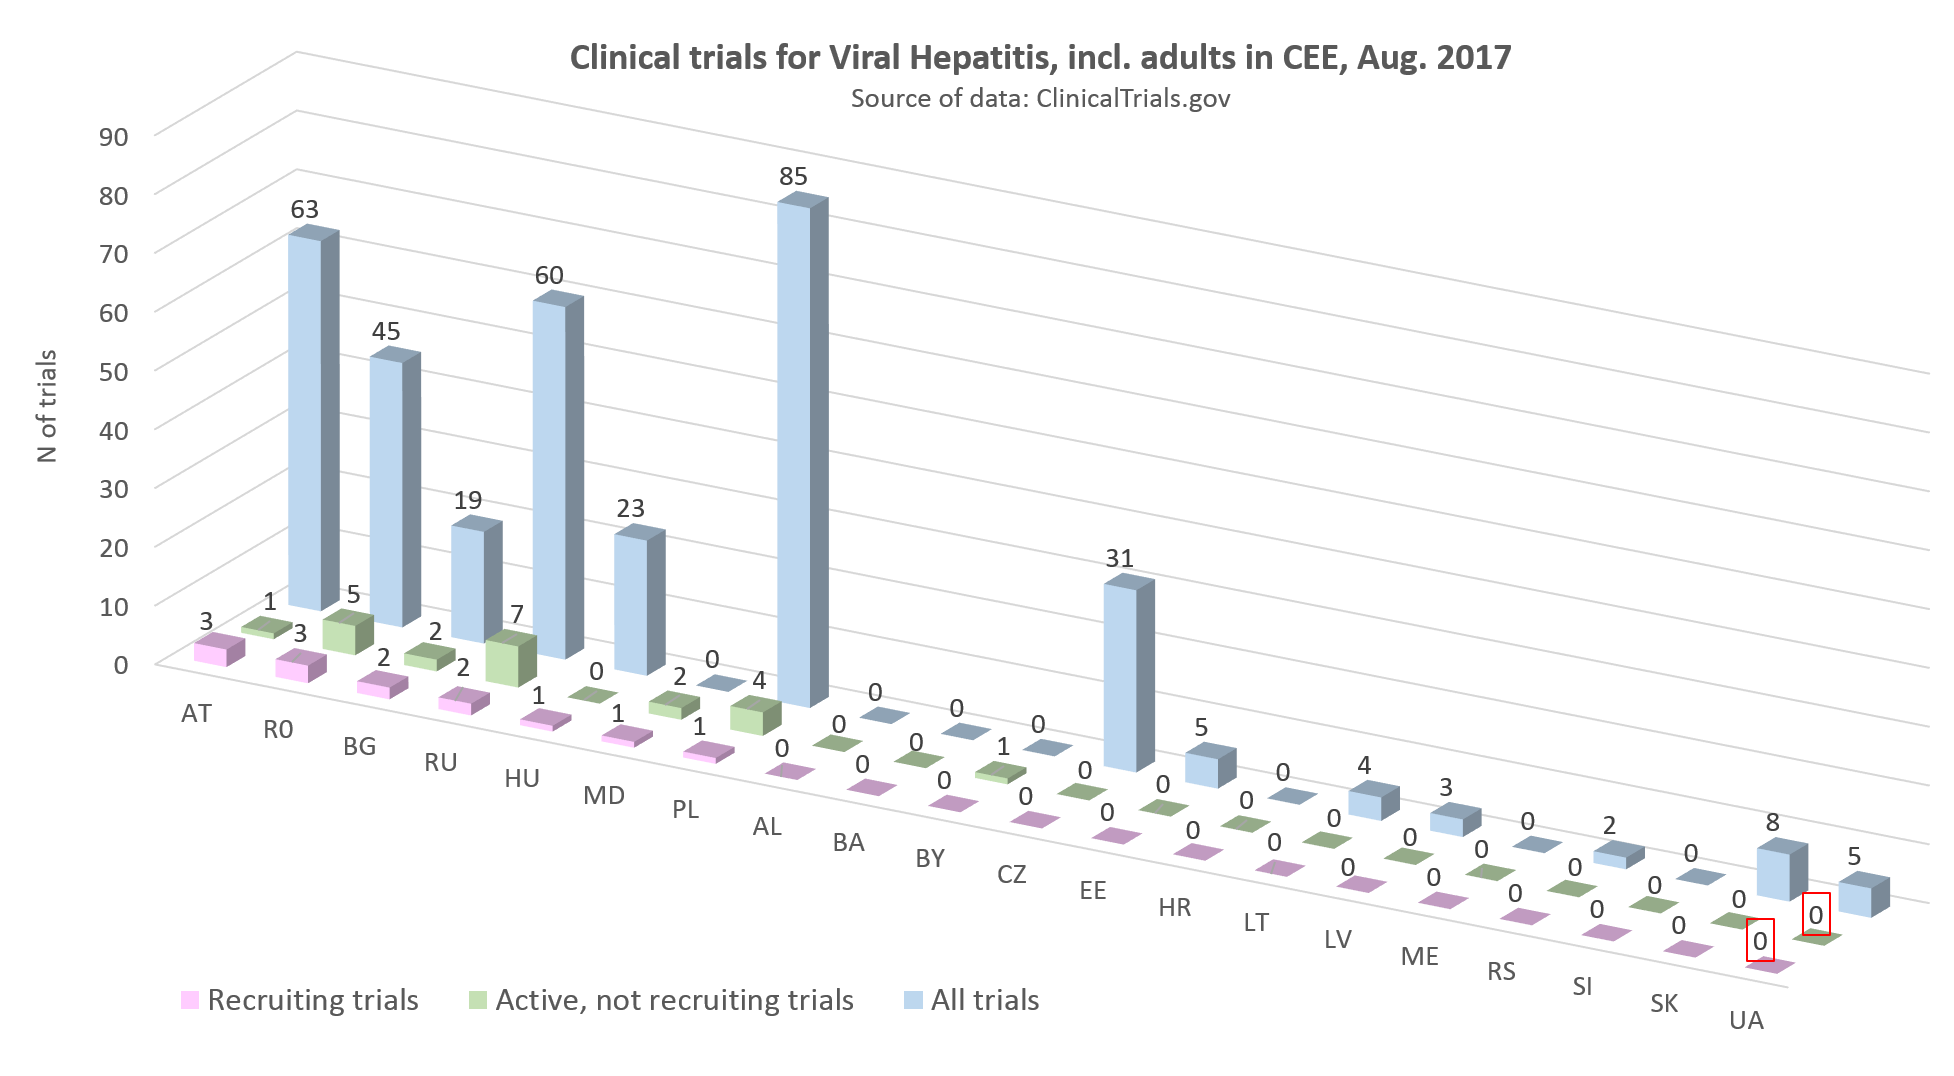 clinical trials for viral hepatitis including adults in CEE, August 2017